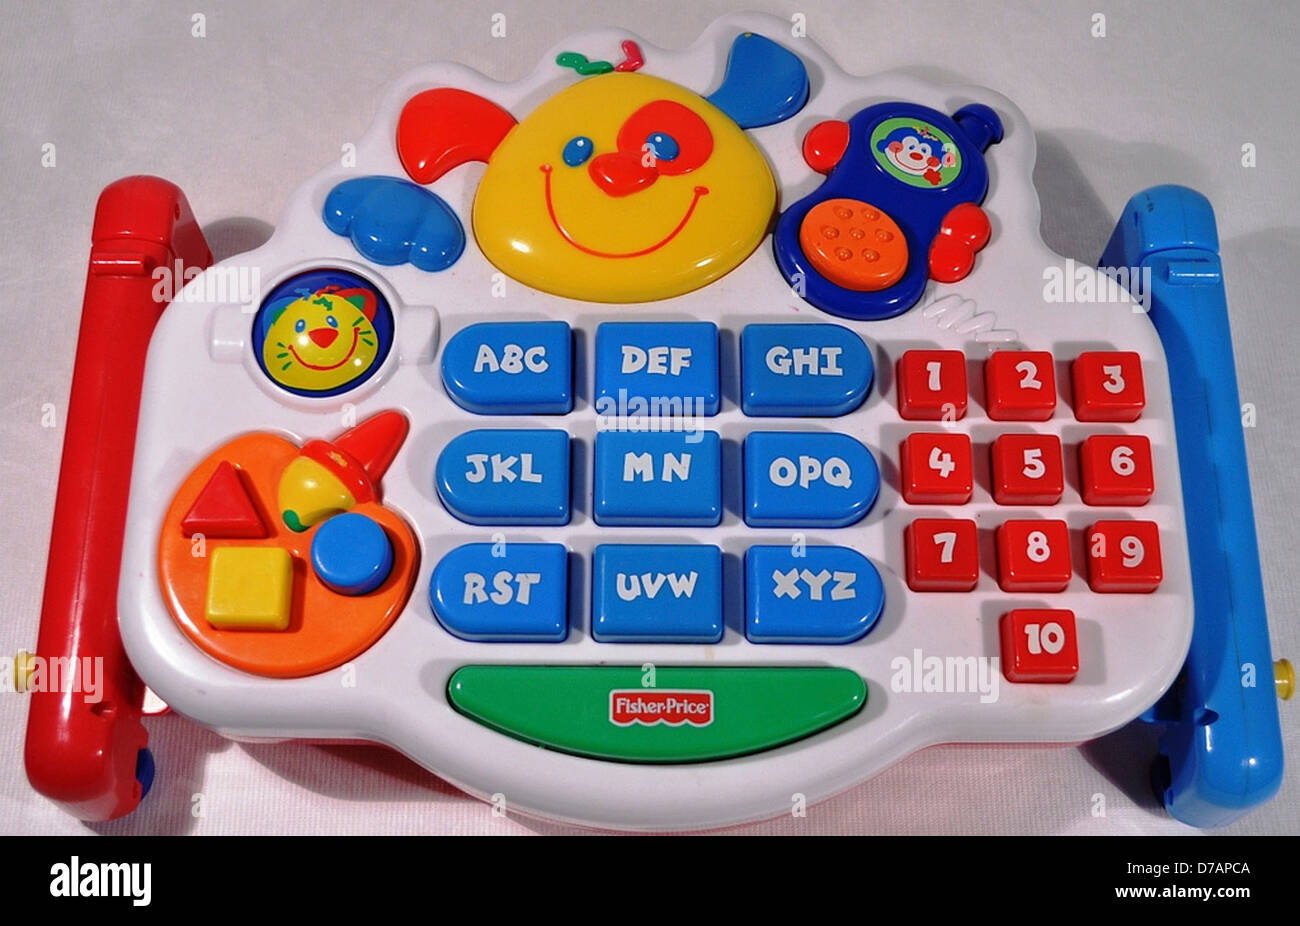 Fisher price toy stock photos fisher price toy stock images alamy fisher price toy stock image buycottarizona